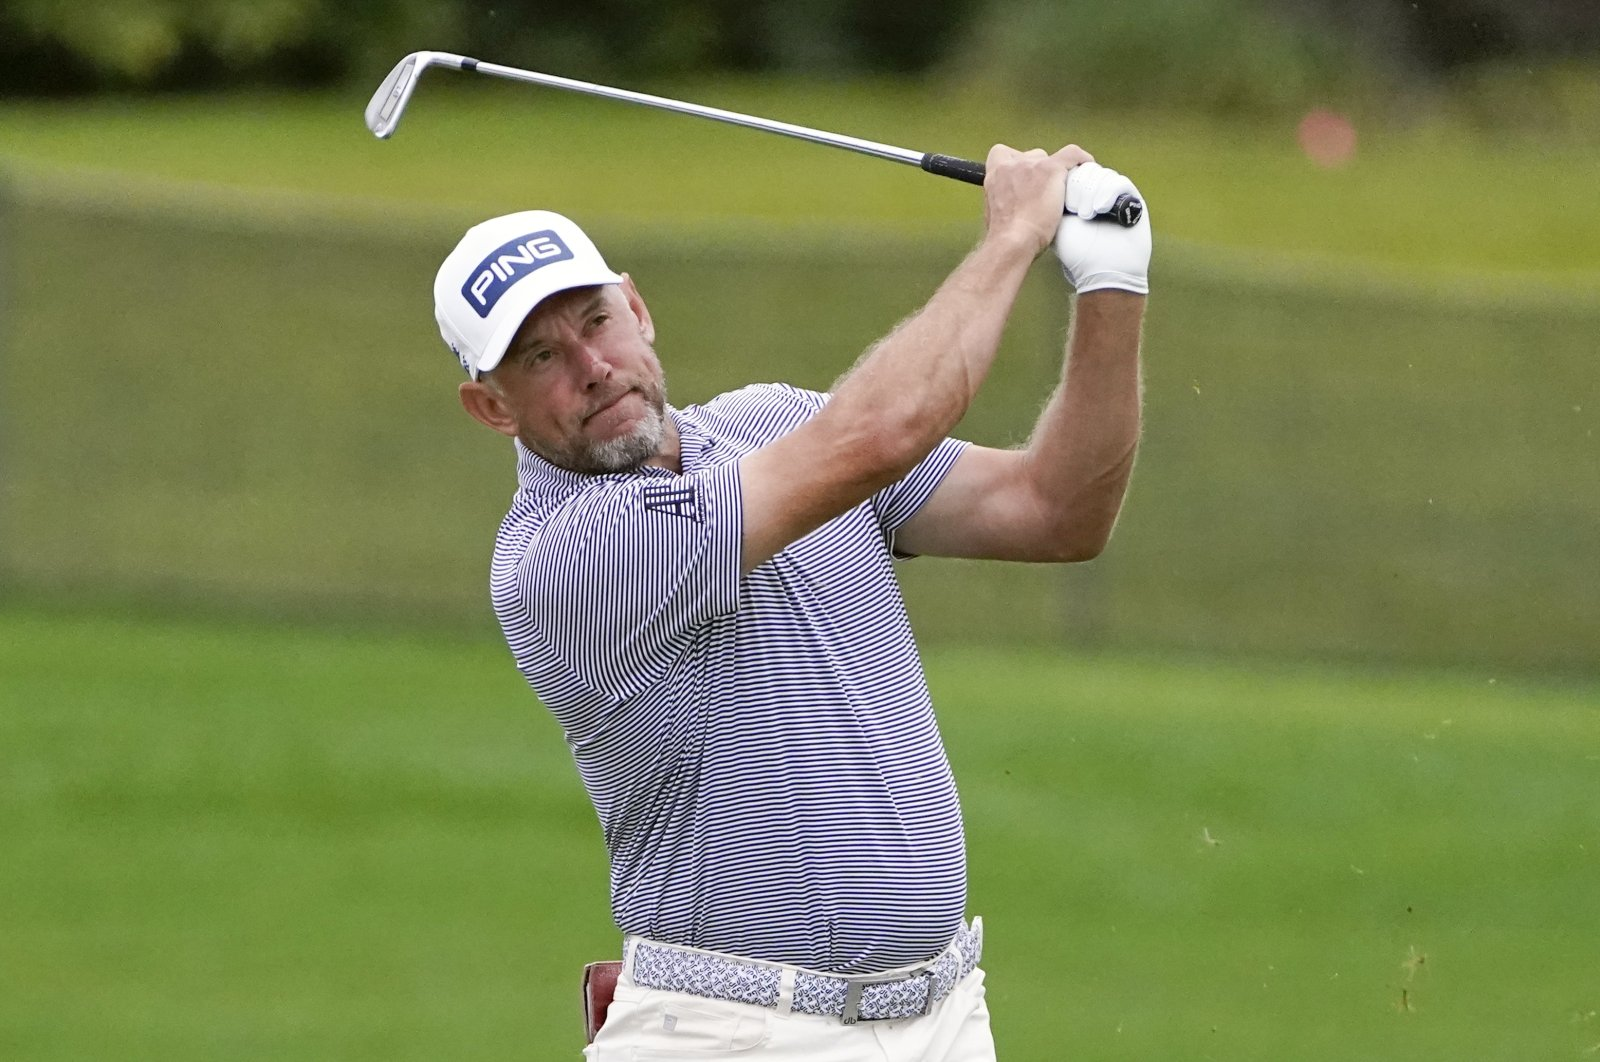 England's Lee Westwood hits a shot from the 16th fairway during the third round of the Arnold Palmer Invitational golf tournament in Orlando, Florida, March 6, 2021. (AP Photo)